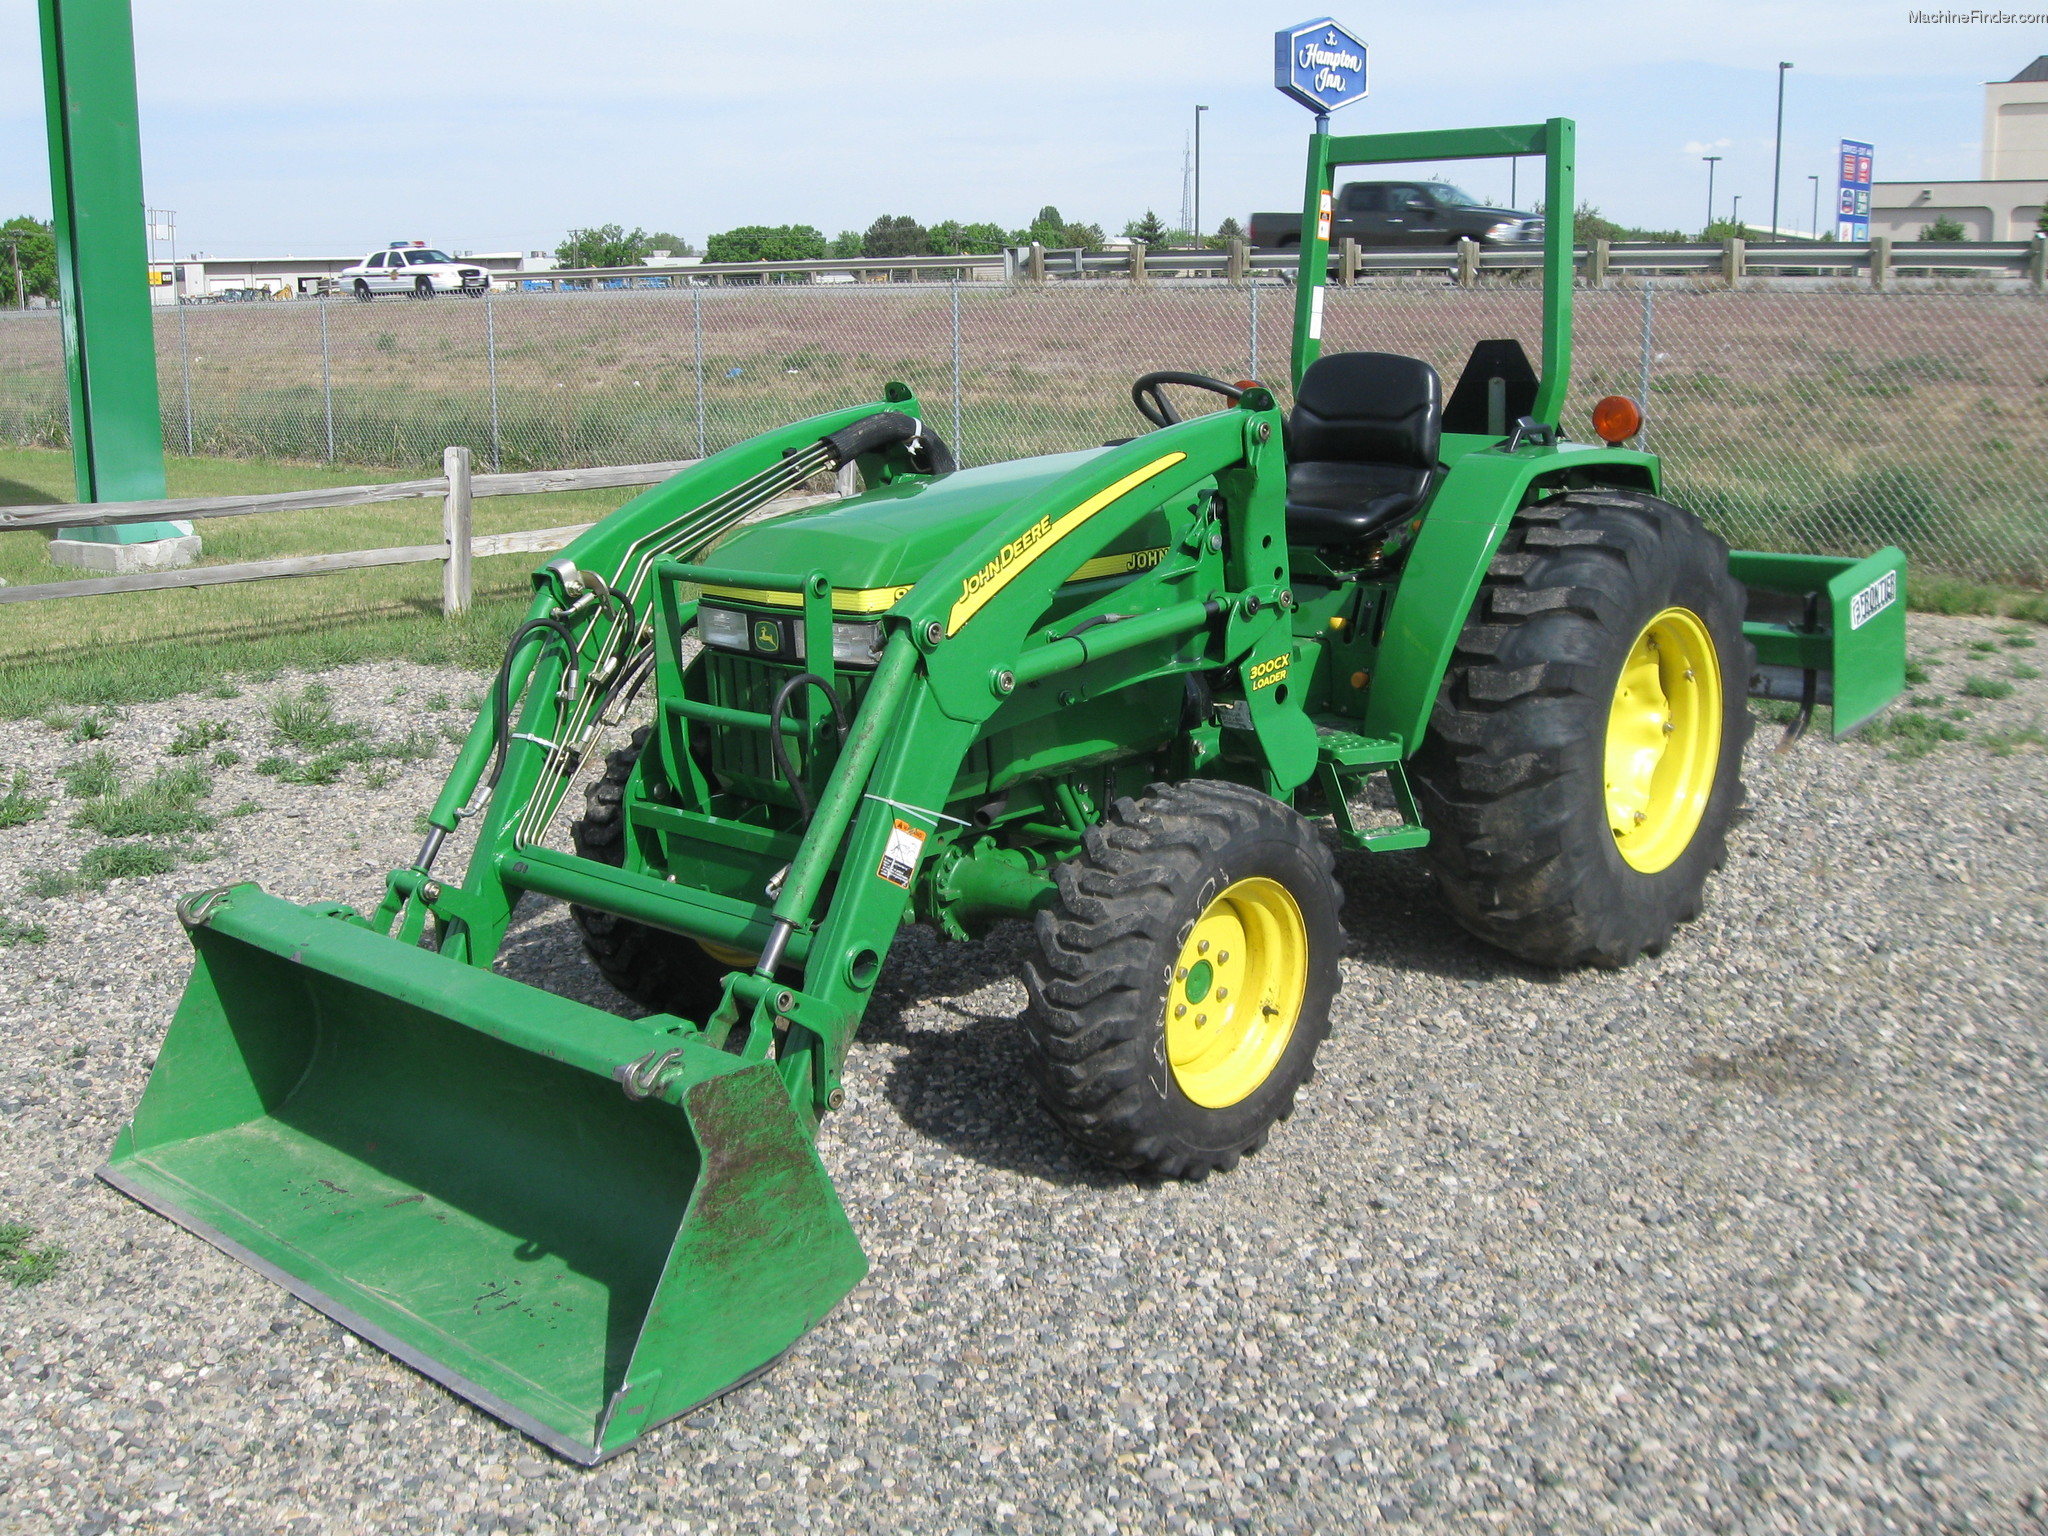 John Deere 990 Compact Utility Tractor 950 Wiring Diagram On 790 Tractors Us Products